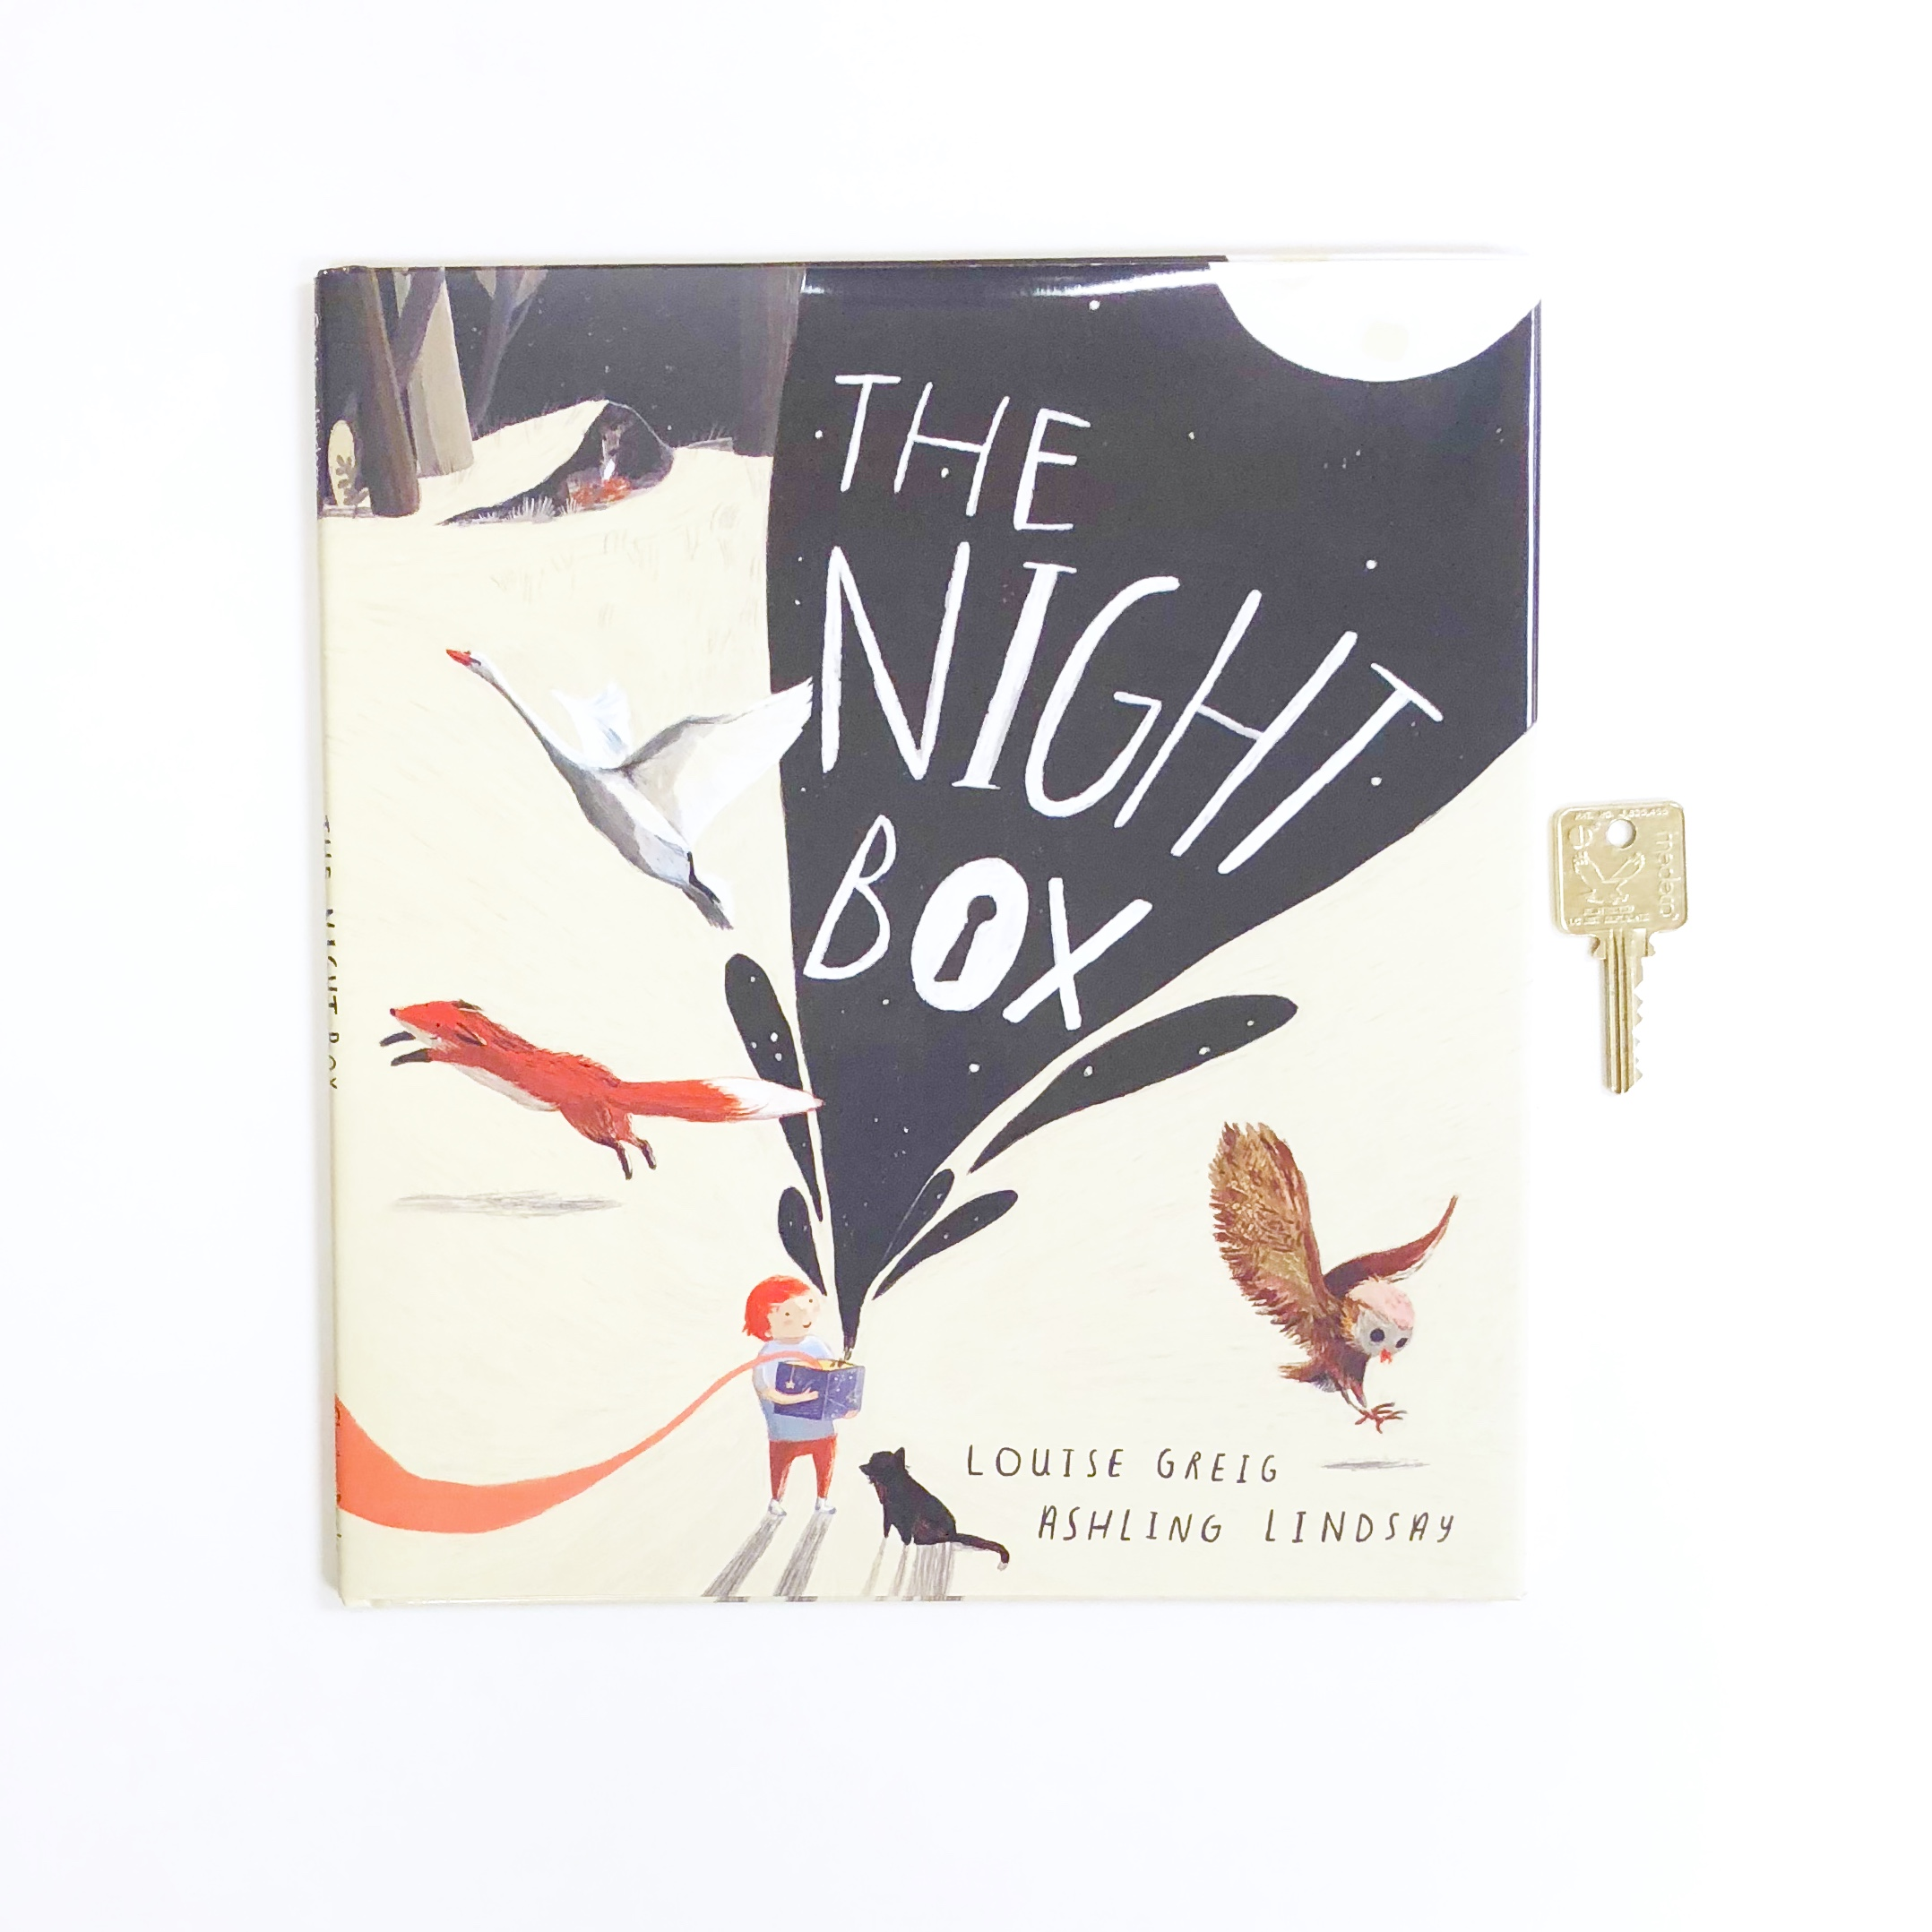 The Night Box, a wonderful kids book and beautiful bedtime story for children uneasy about the dark.jpg